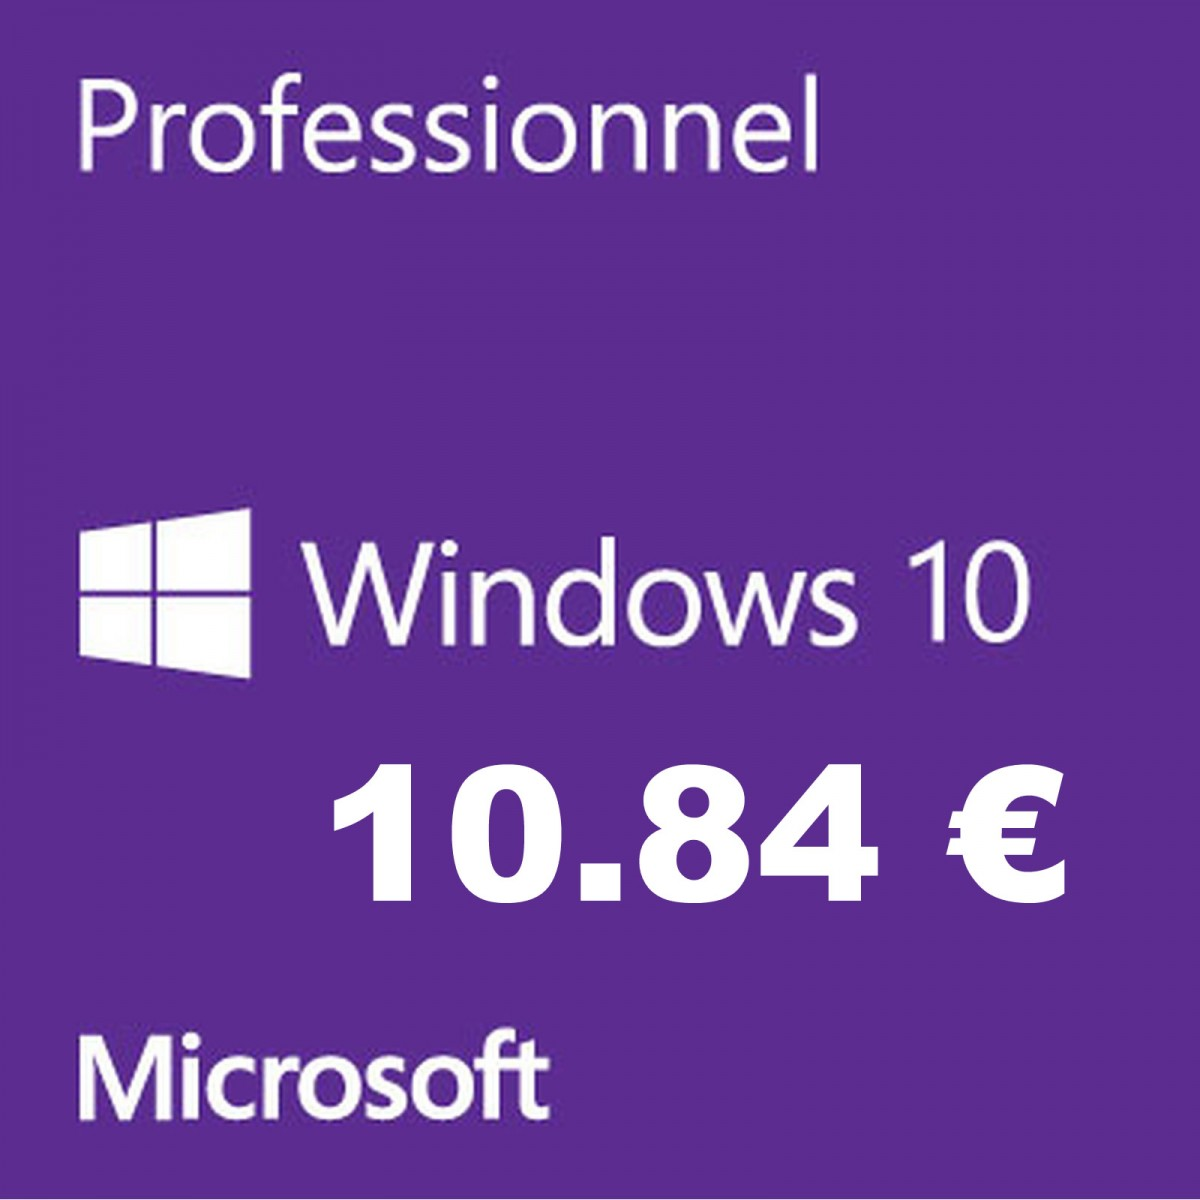 clé-windows-pas-cher licence-windows-pas-cher licence-office-pas-cher microsoft-windows-10-pro-oem 04-10-2019